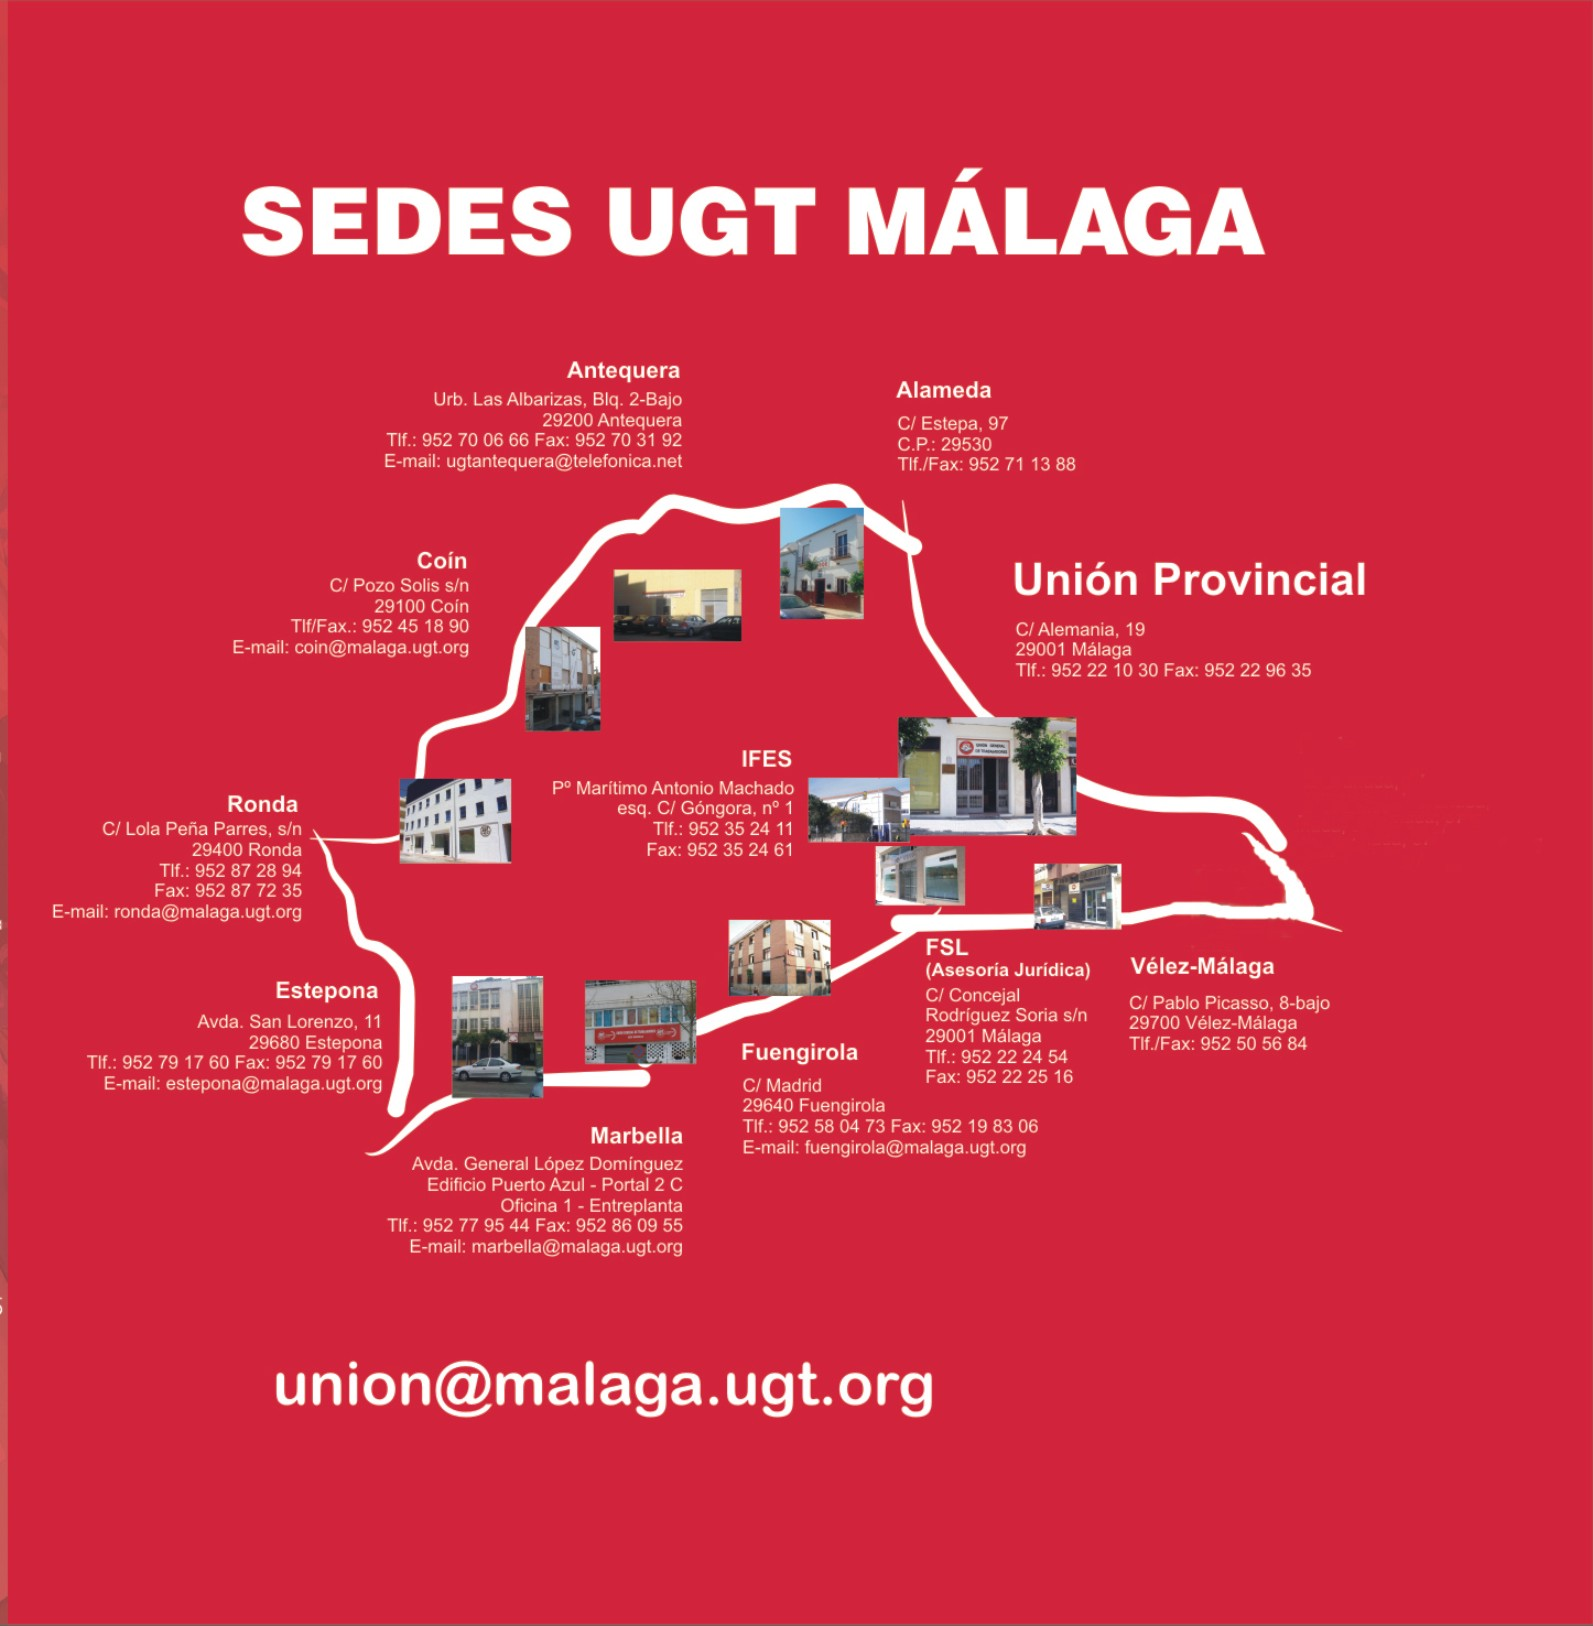 Encuentra nuestras sedes ugt andaluc a for Guia telefonica malaga